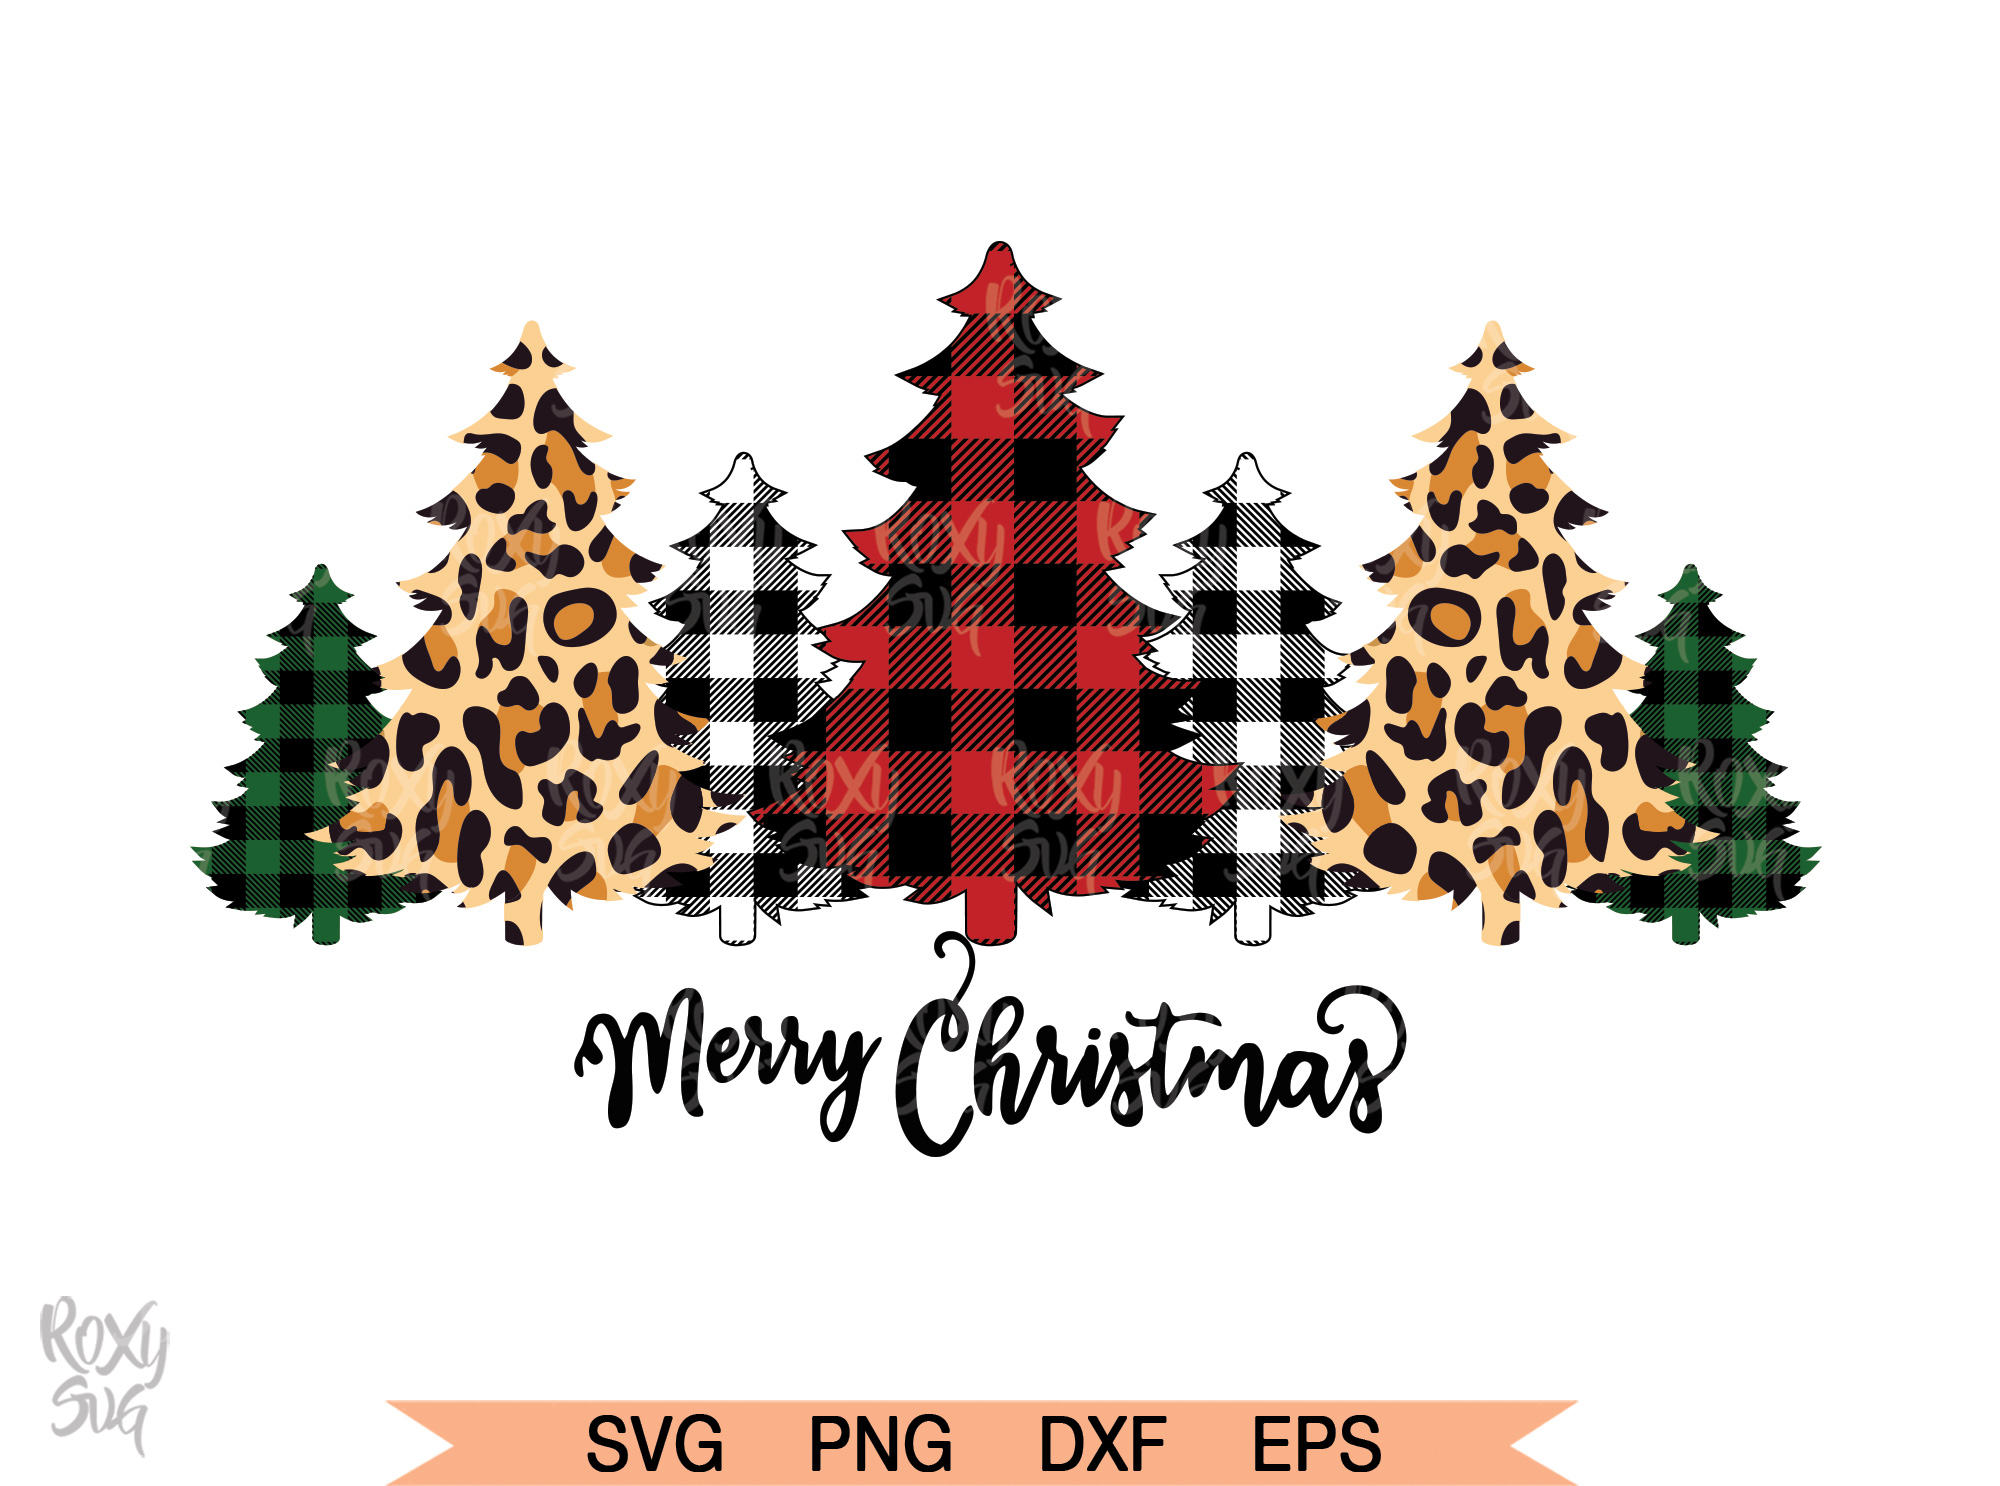 Download Free Buffalo Plaid Trees Graphic By Roxysvg26 Creative Fabrica for Cricut Explore, Silhouette and other cutting machines.